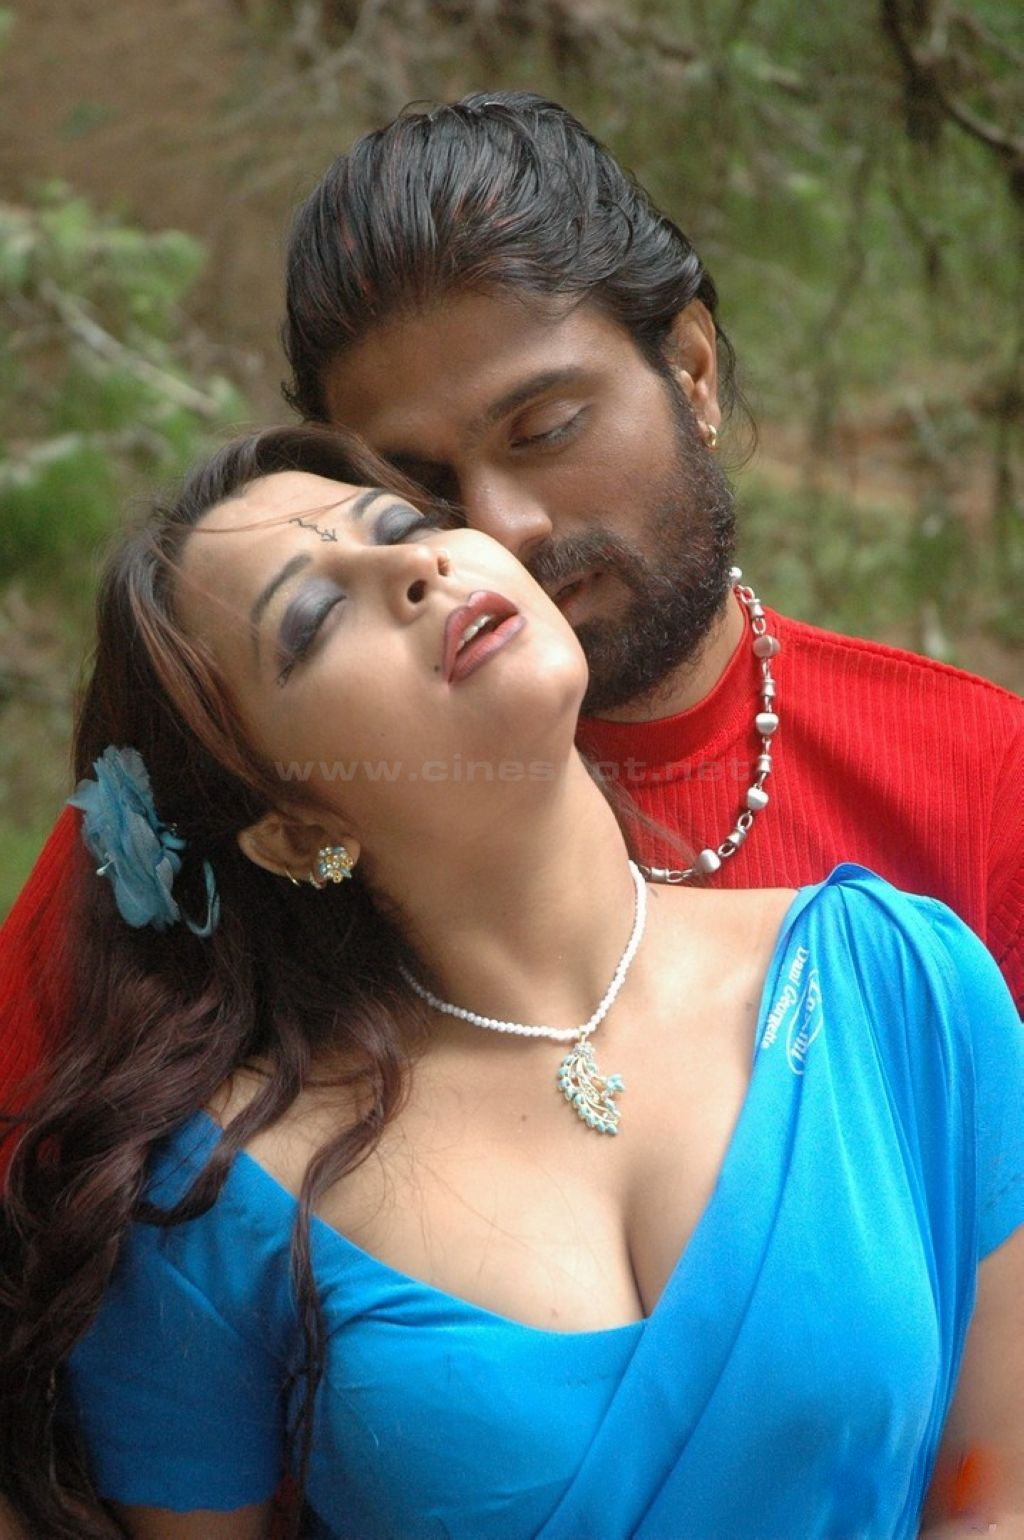 South Indian Sex Bomb Actress Showing Sexy Big Boombs - Hd -2827